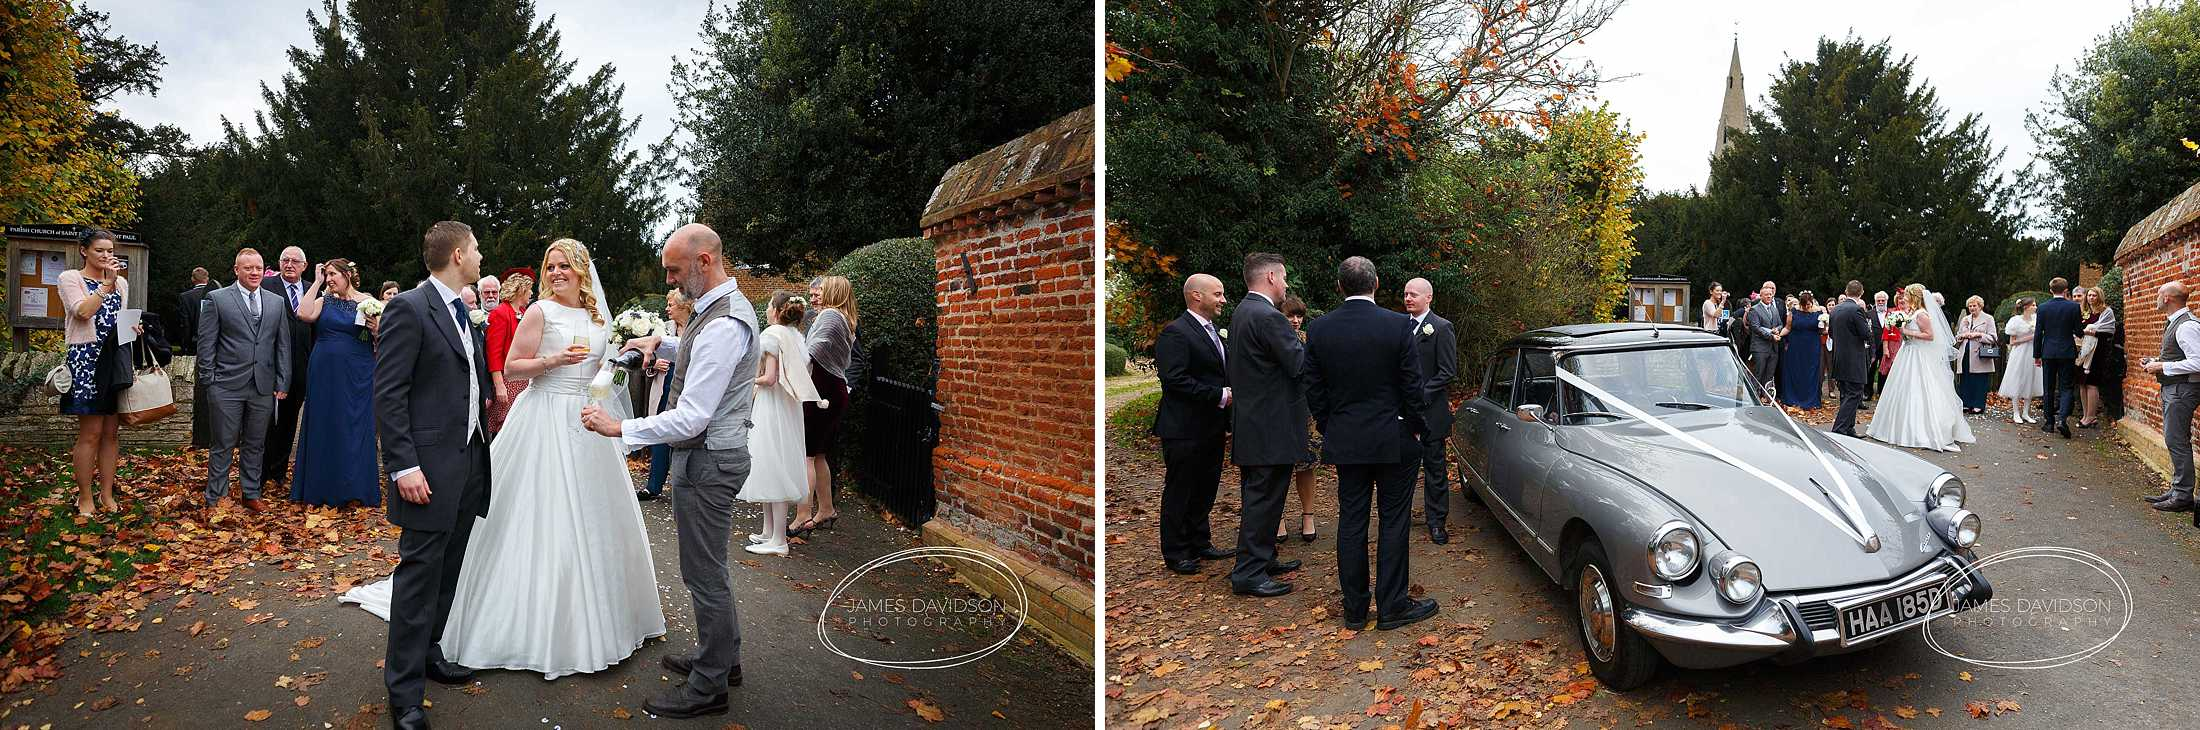 south-farm-wedding-photography-041